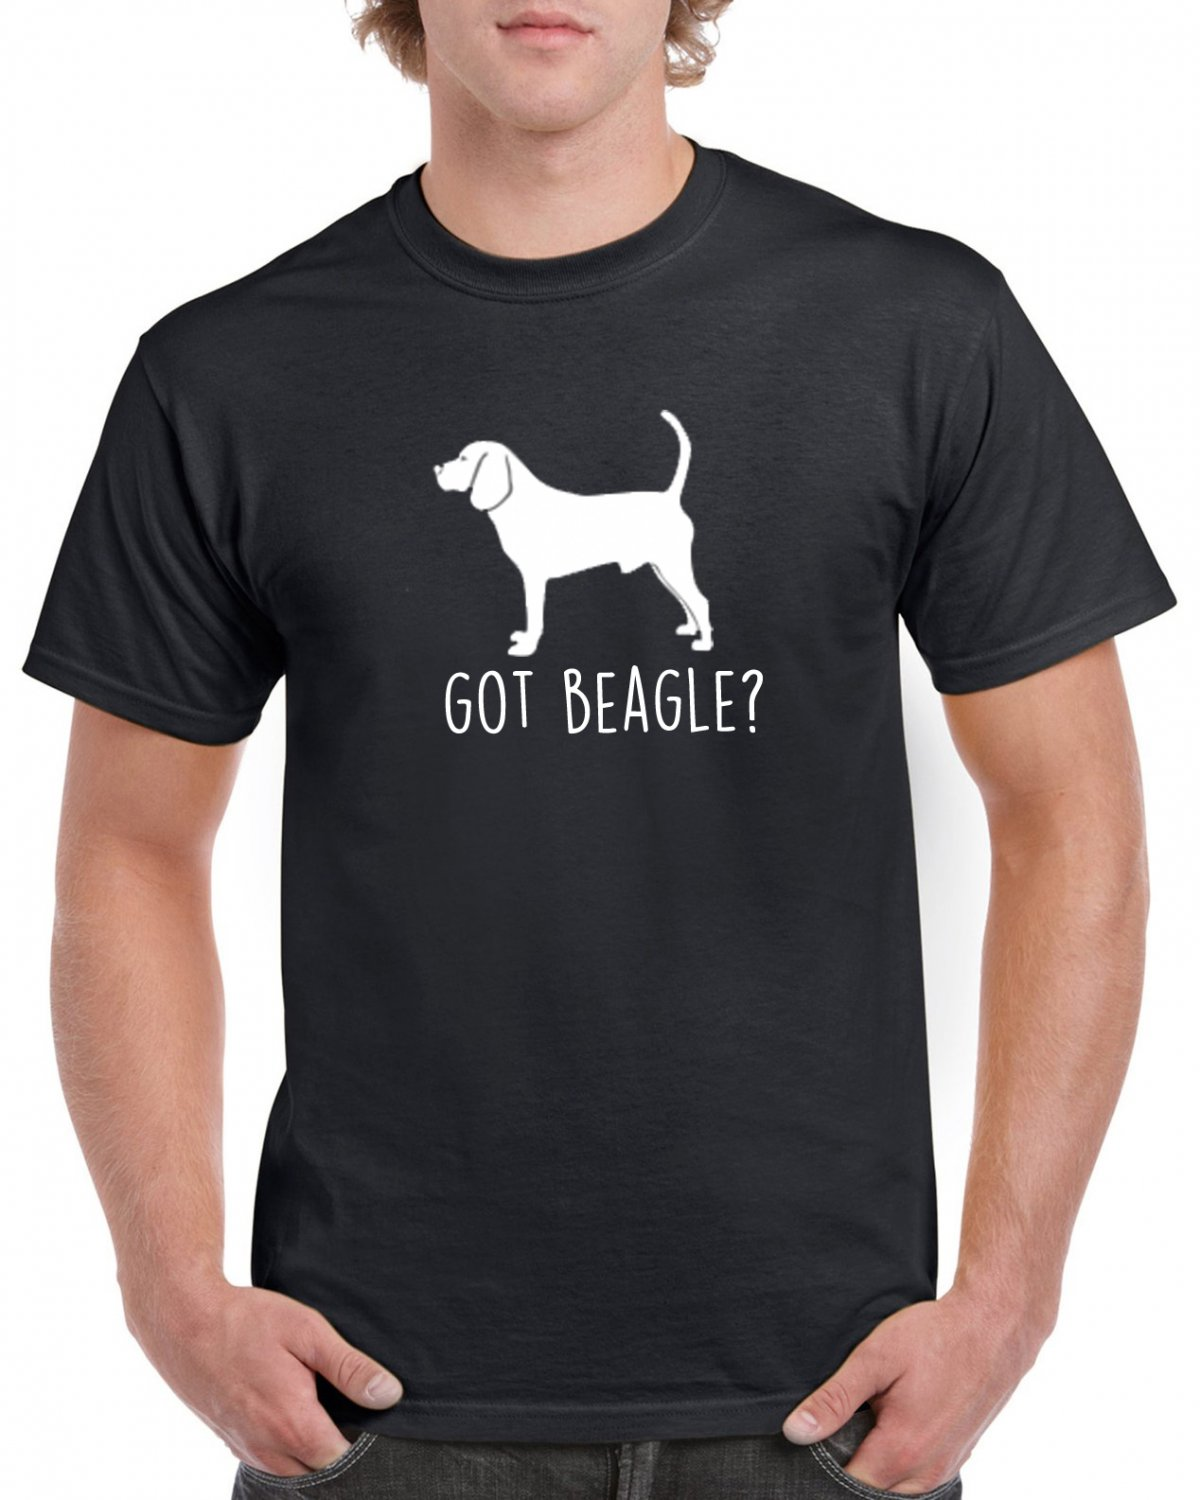 Got Beagle? T-shirt Dog Lovers Tshirt Cool Unisex Top Tee